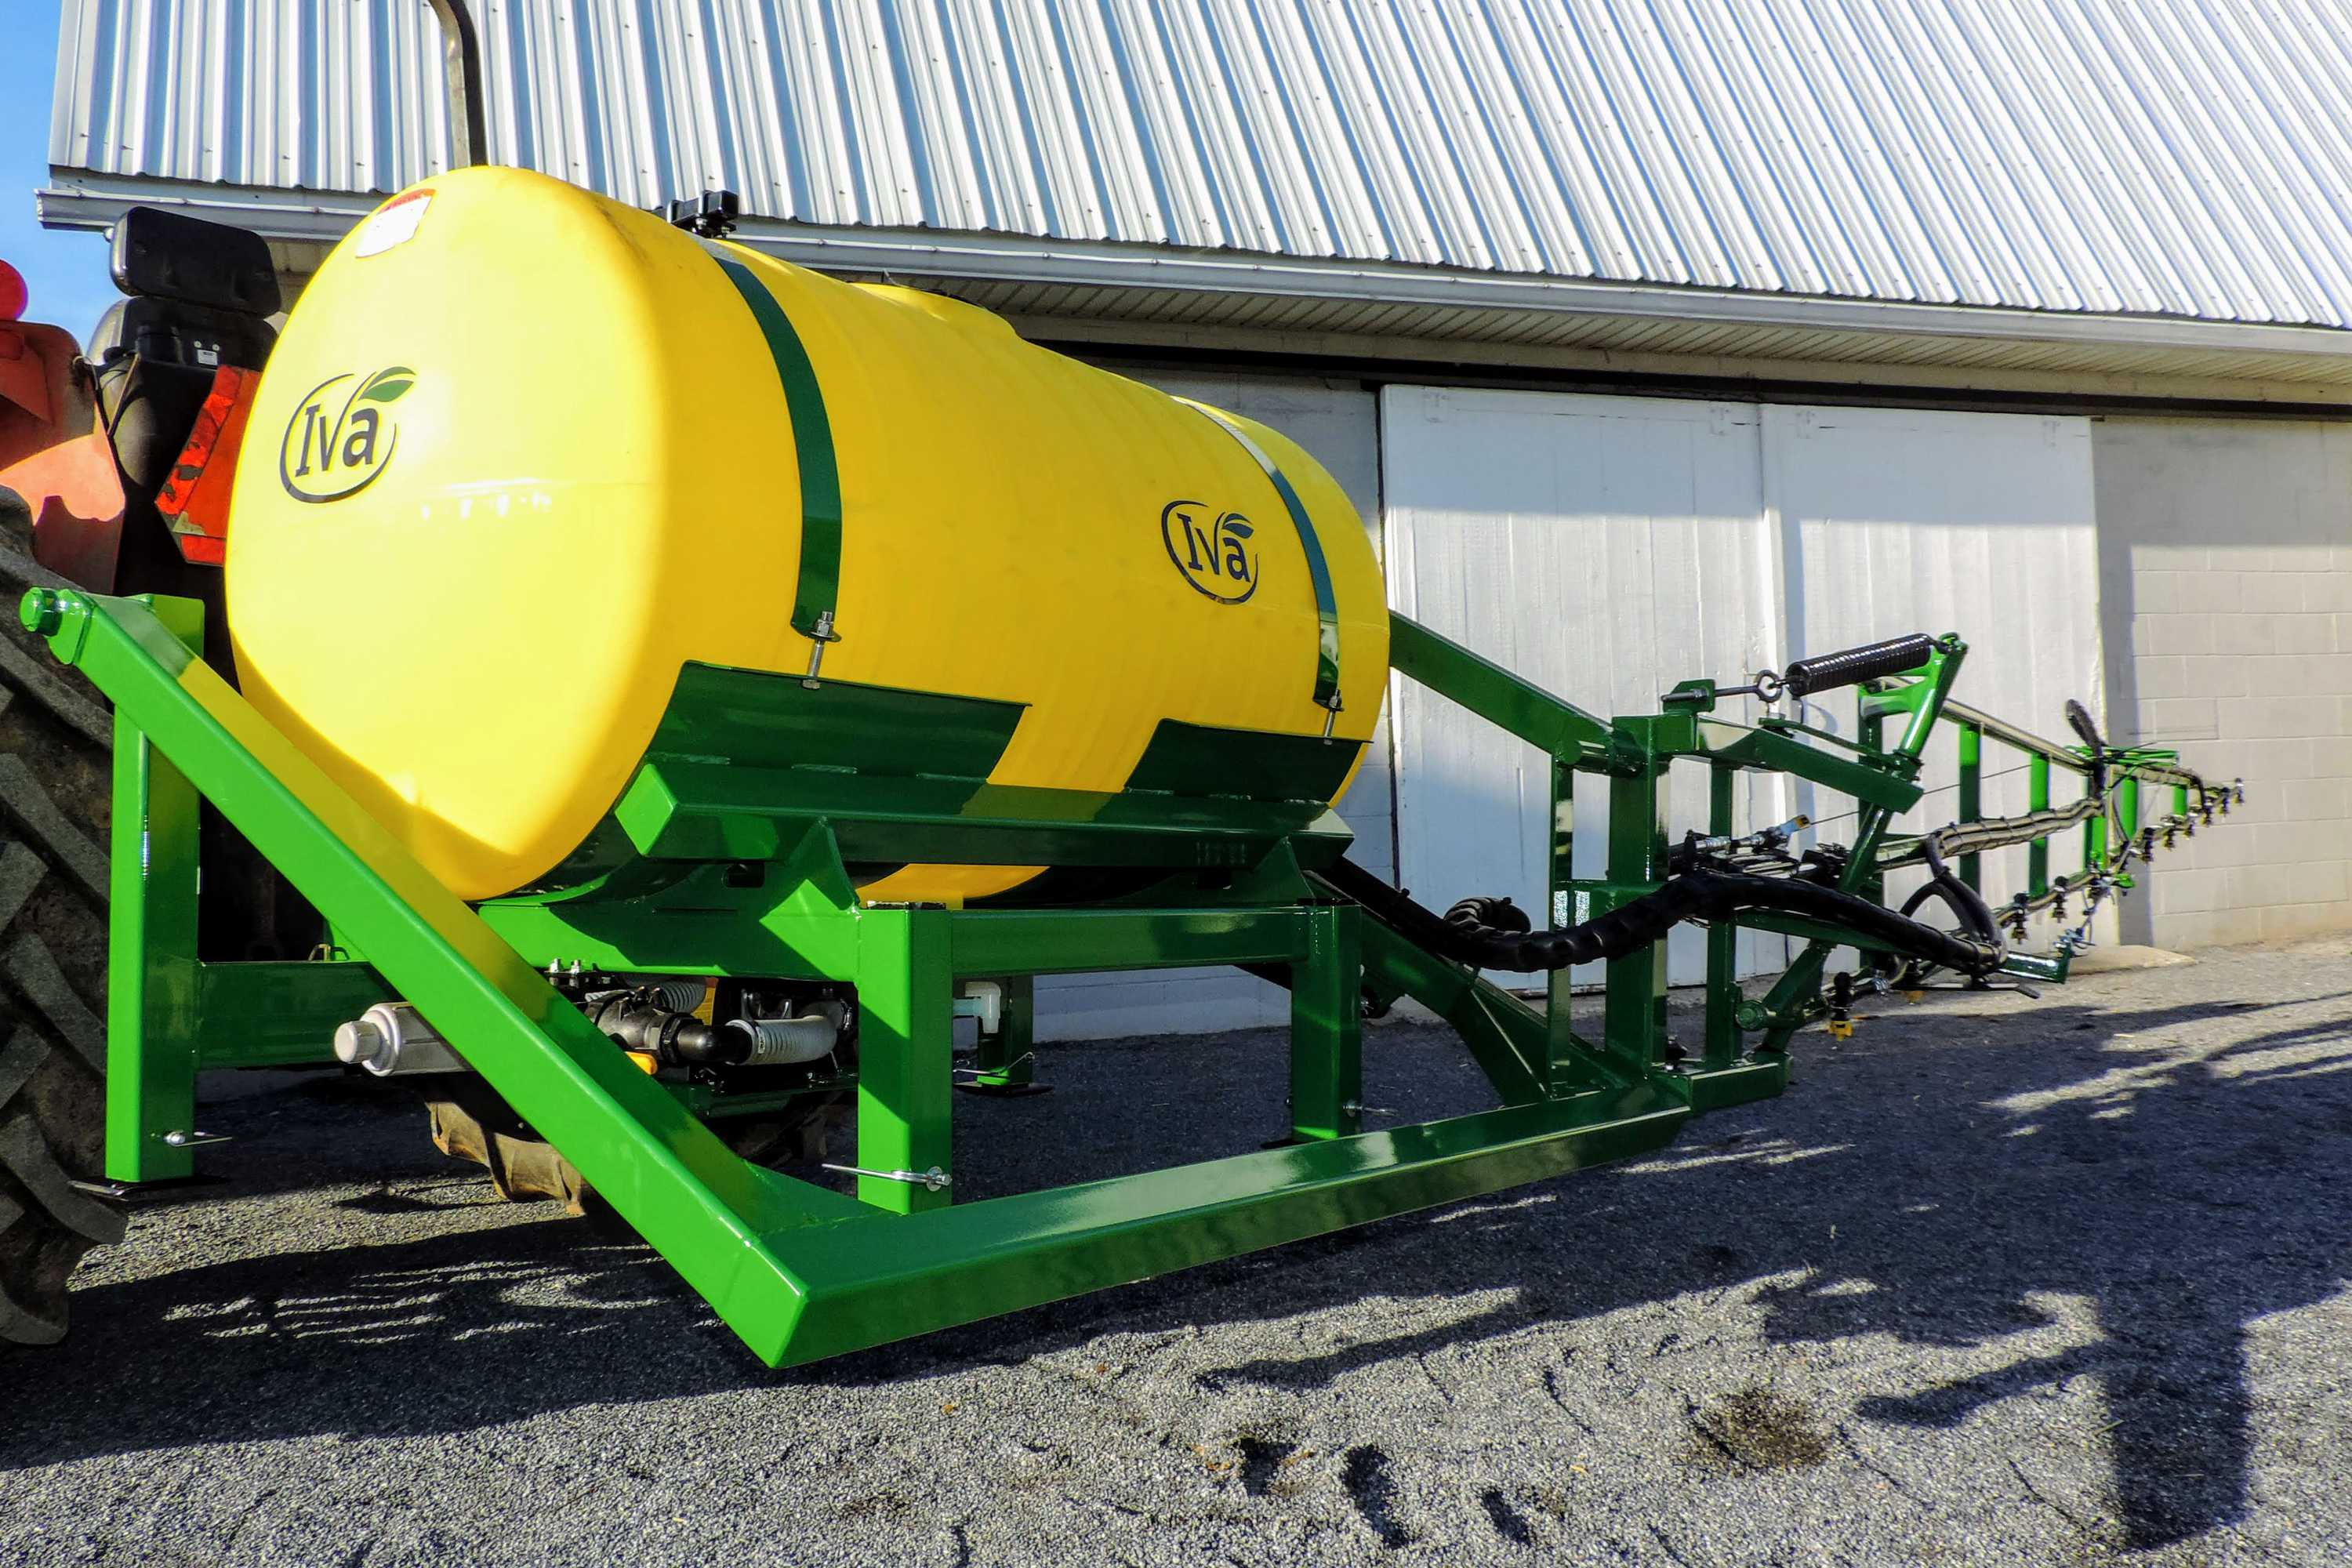 200 gallon 3-point hitch vegetable sprayer with 25' single sided boom